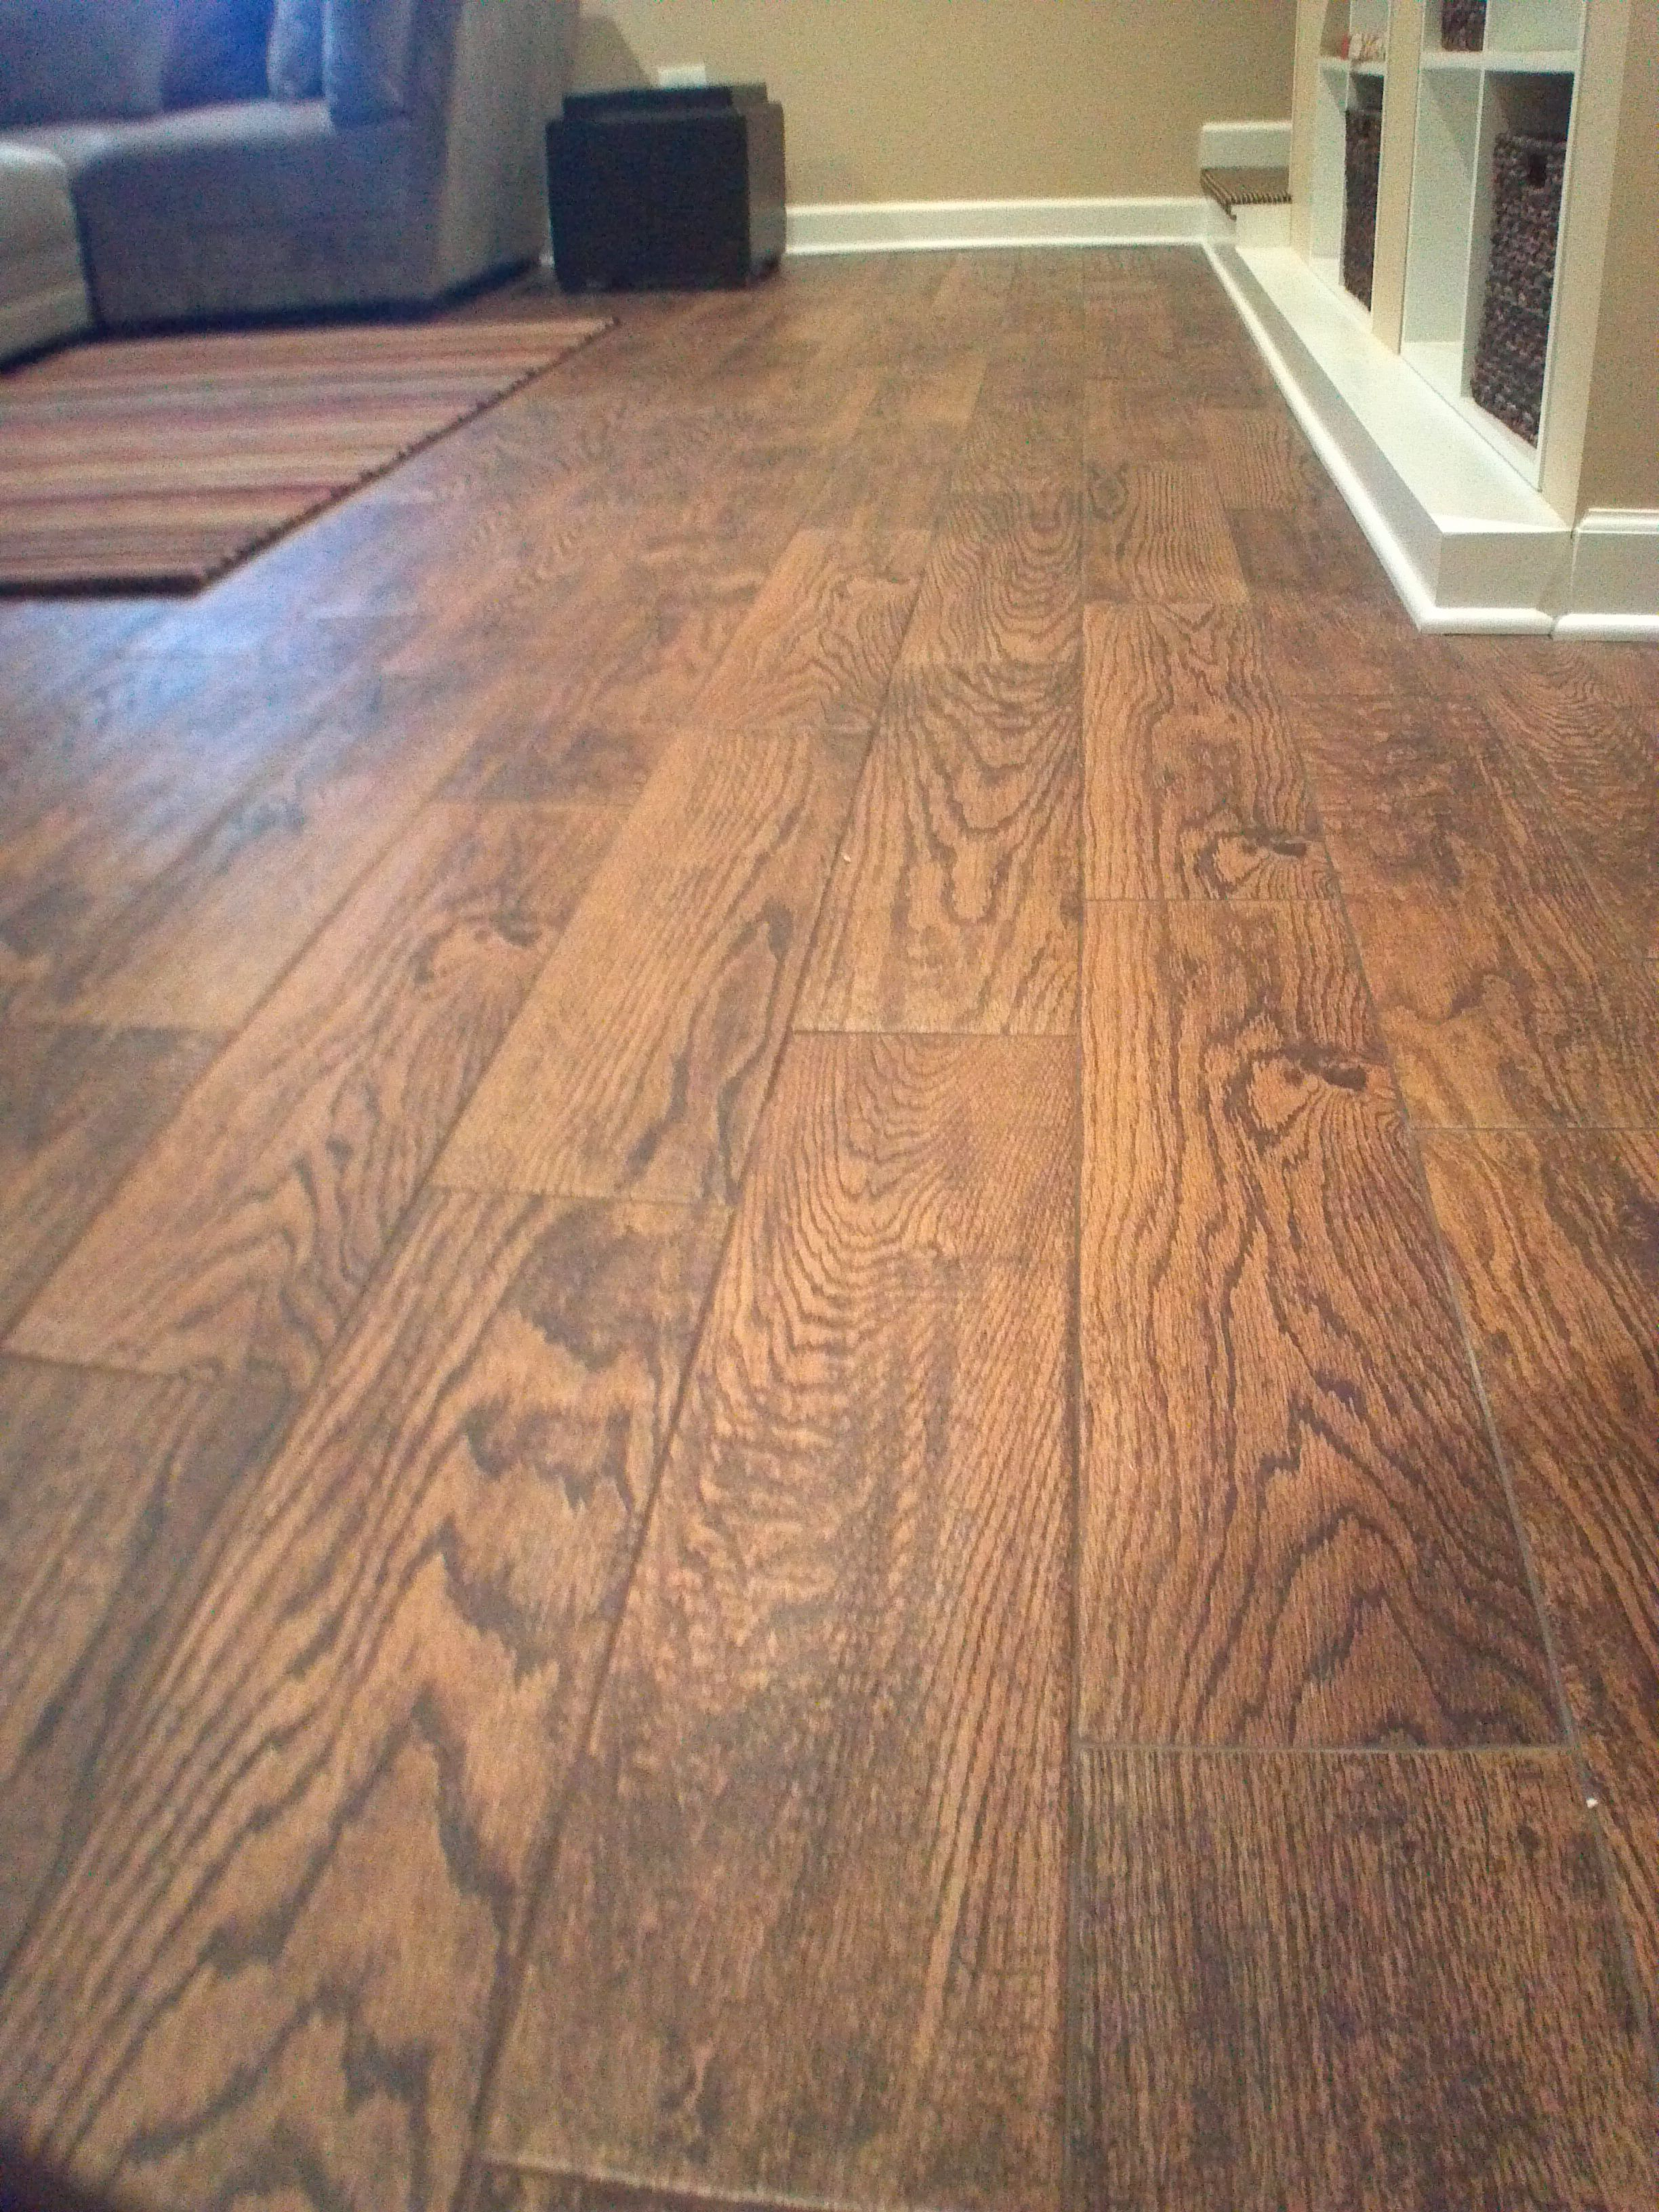 Shop For All Of Your Wood Look Tile Needs At The Quality Flooring 4